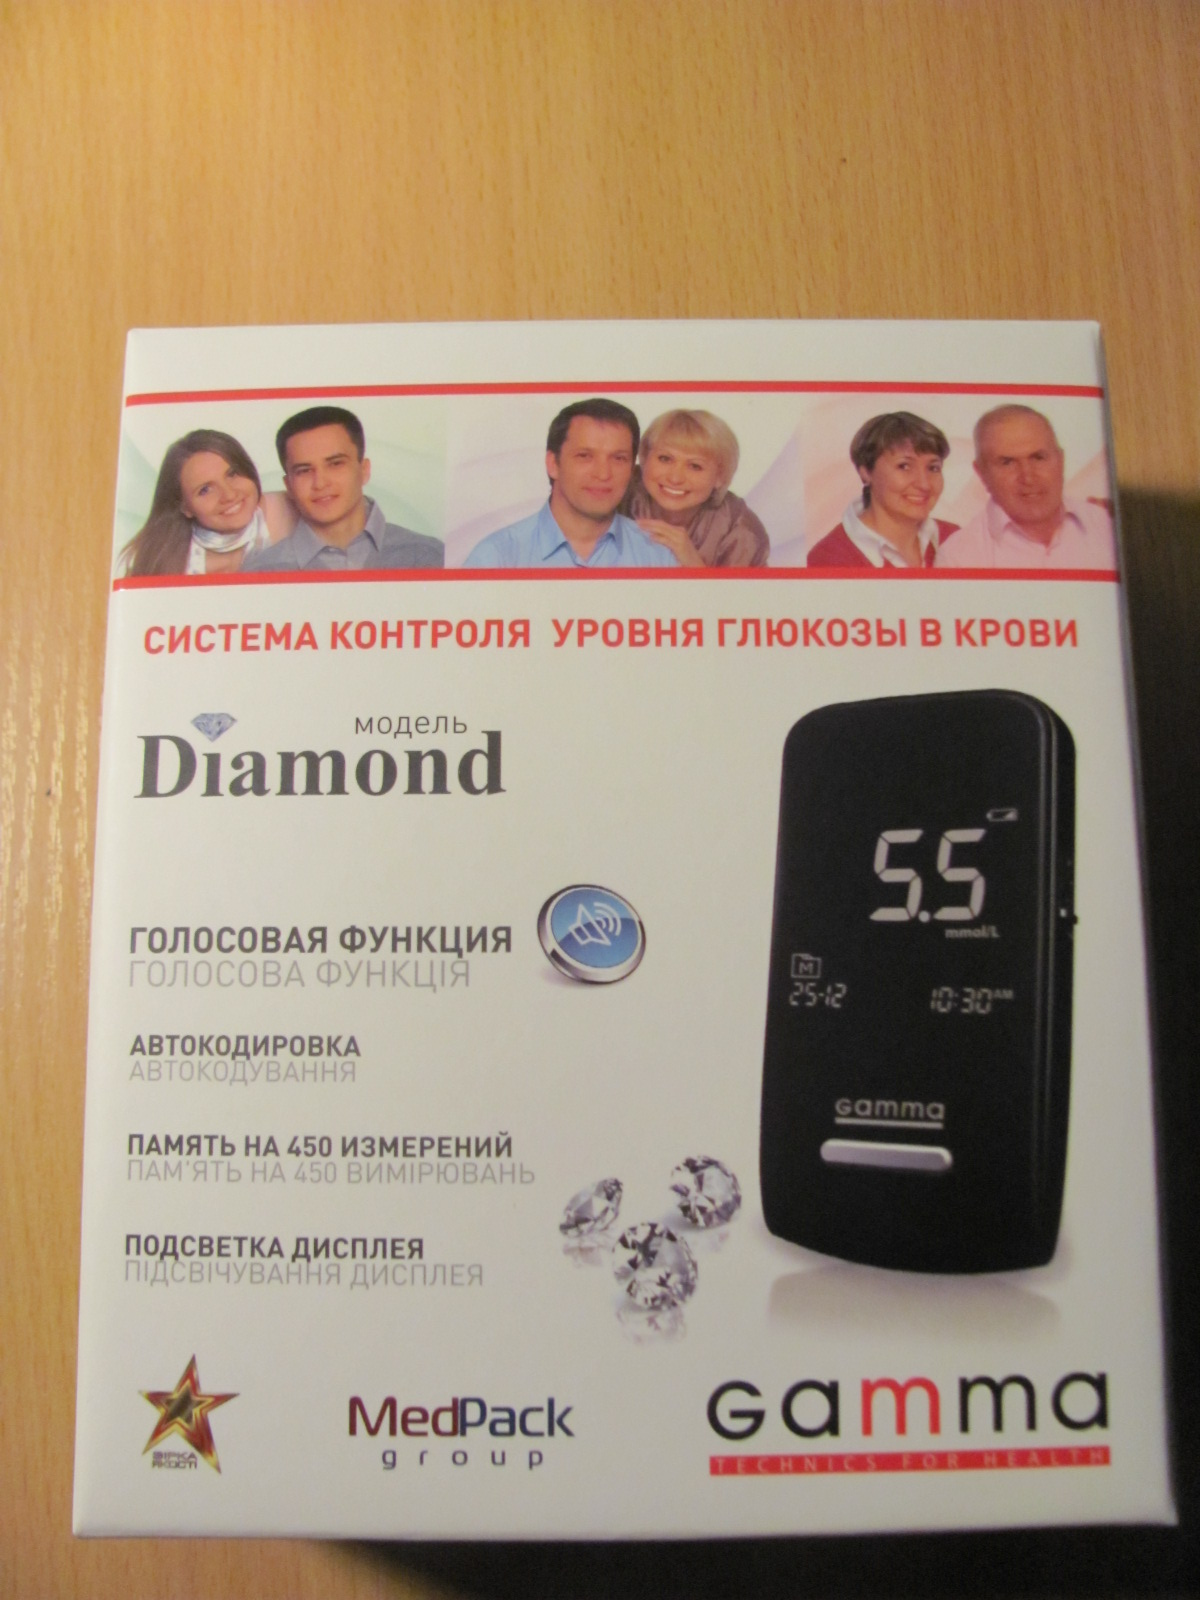 Глюкометр Gamma Diamond